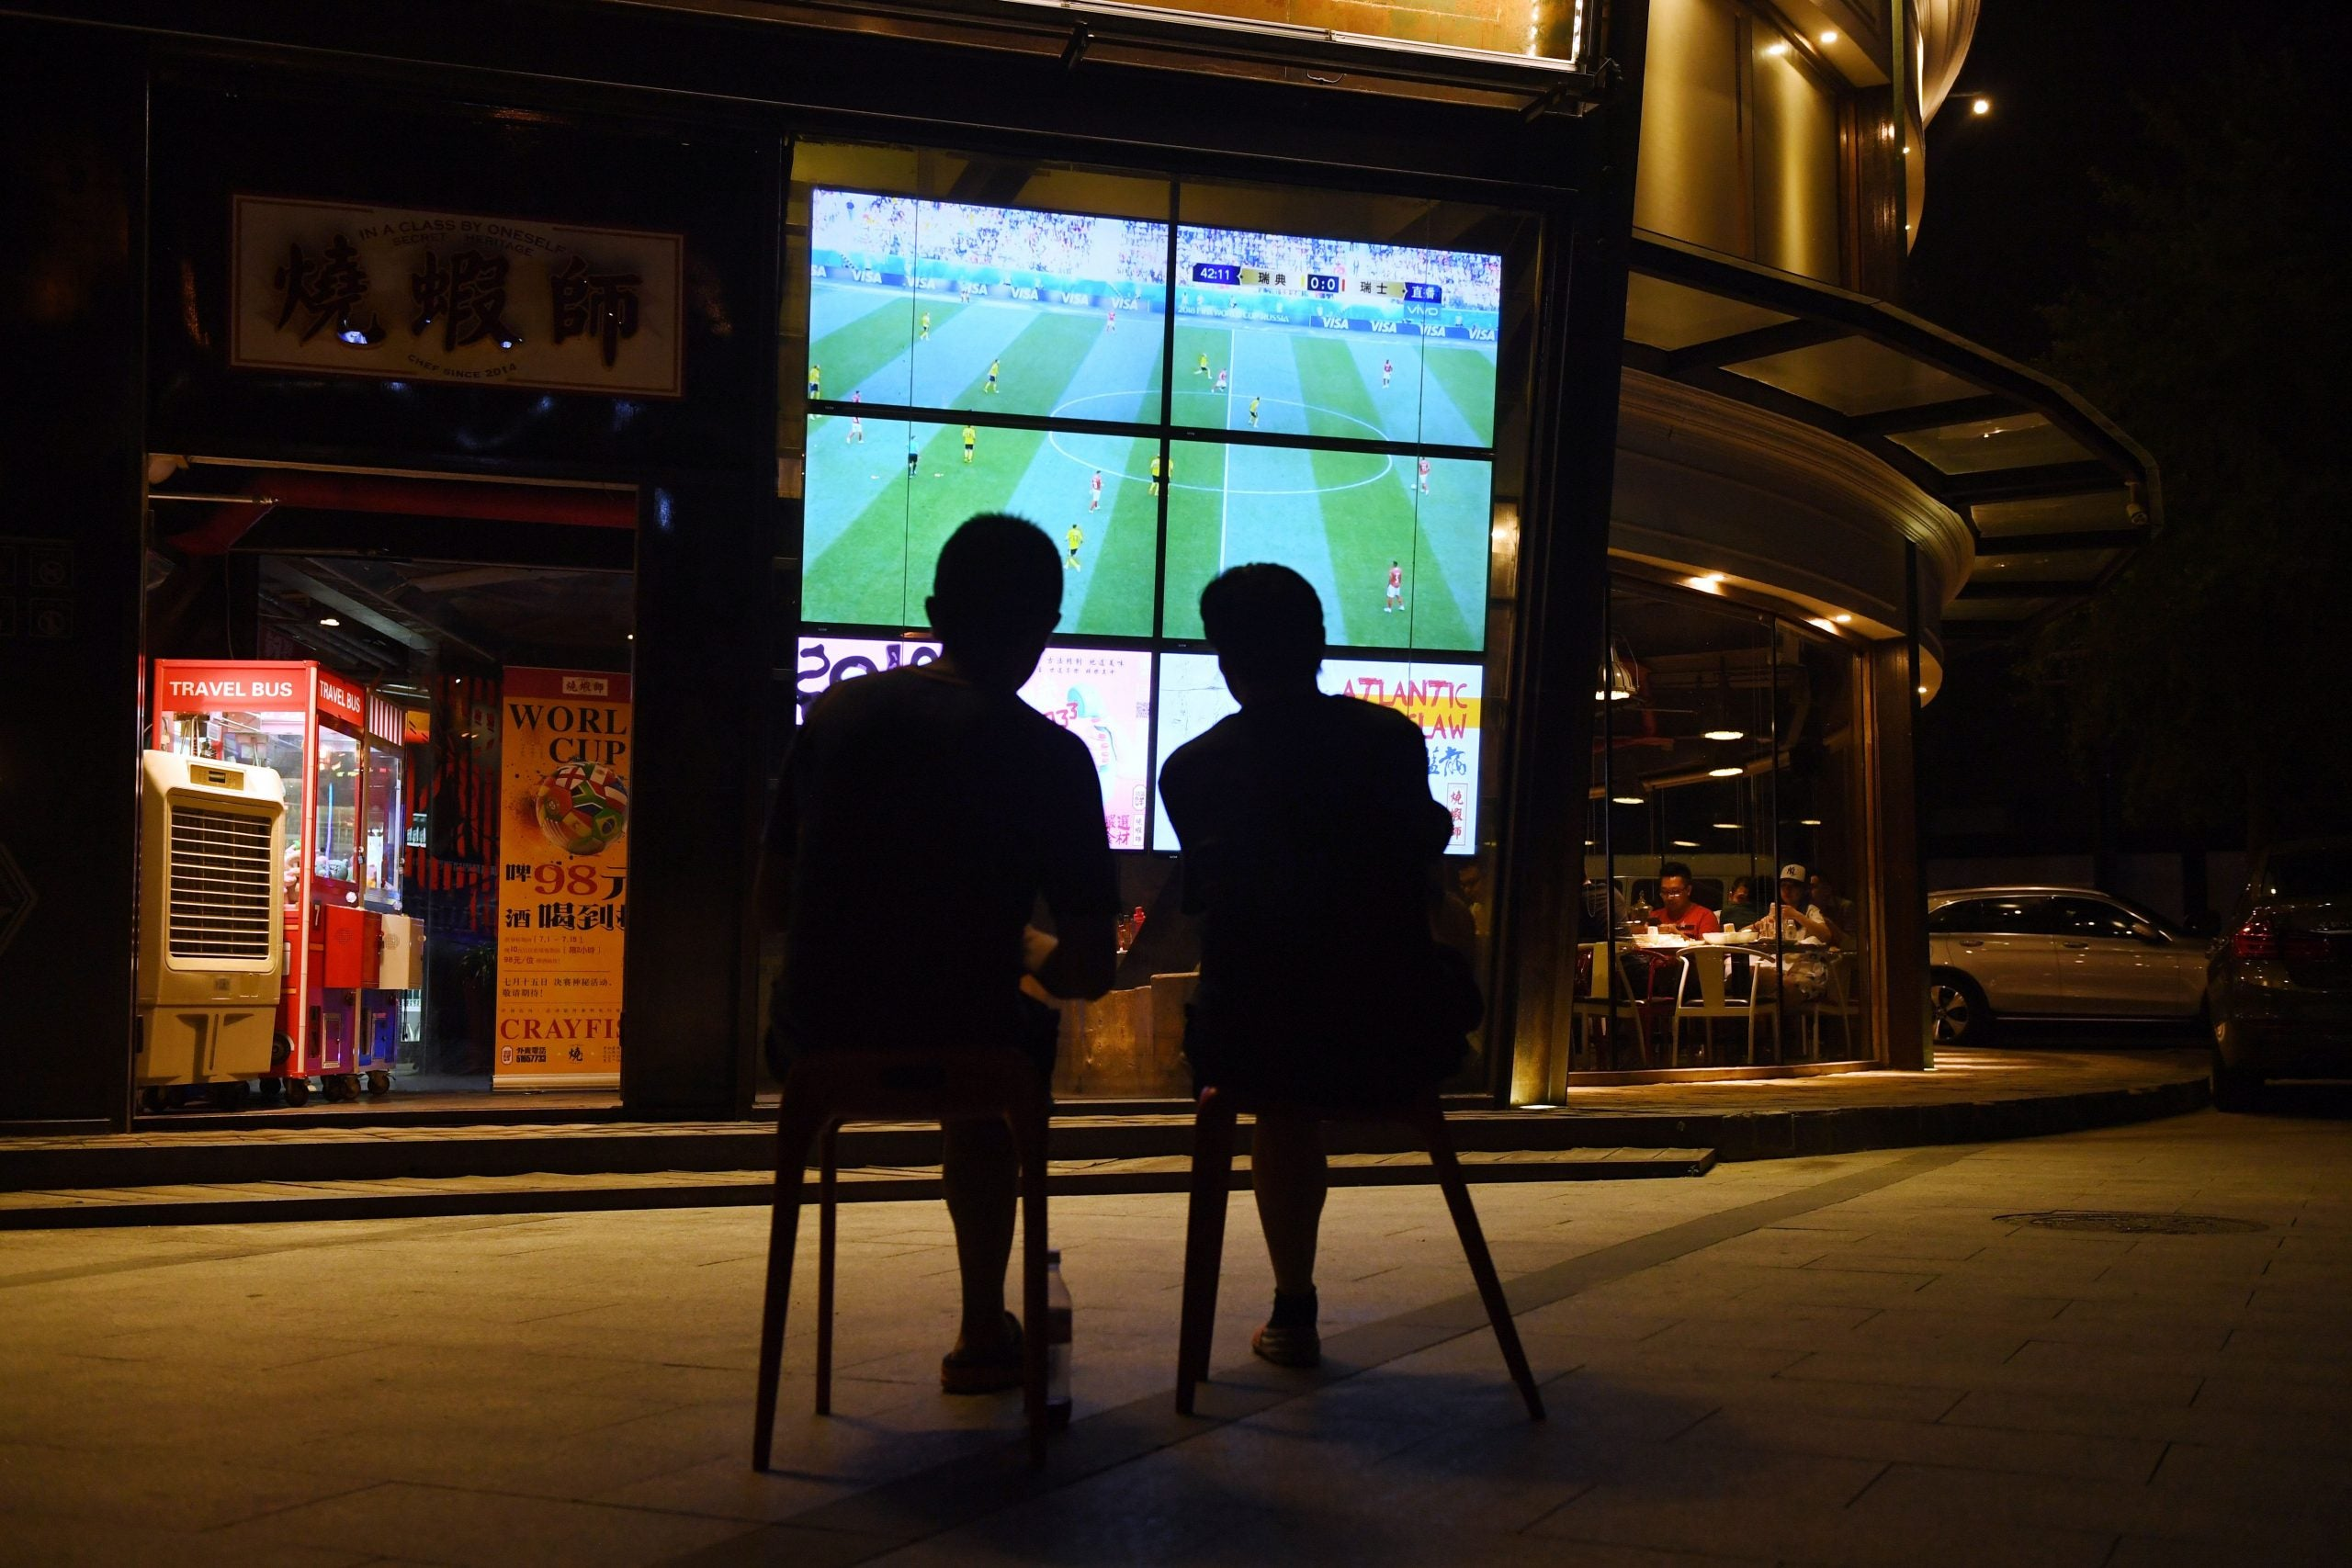 My new super-hub promises non-stop football. Instead, I am plunged back into TV's dark ages